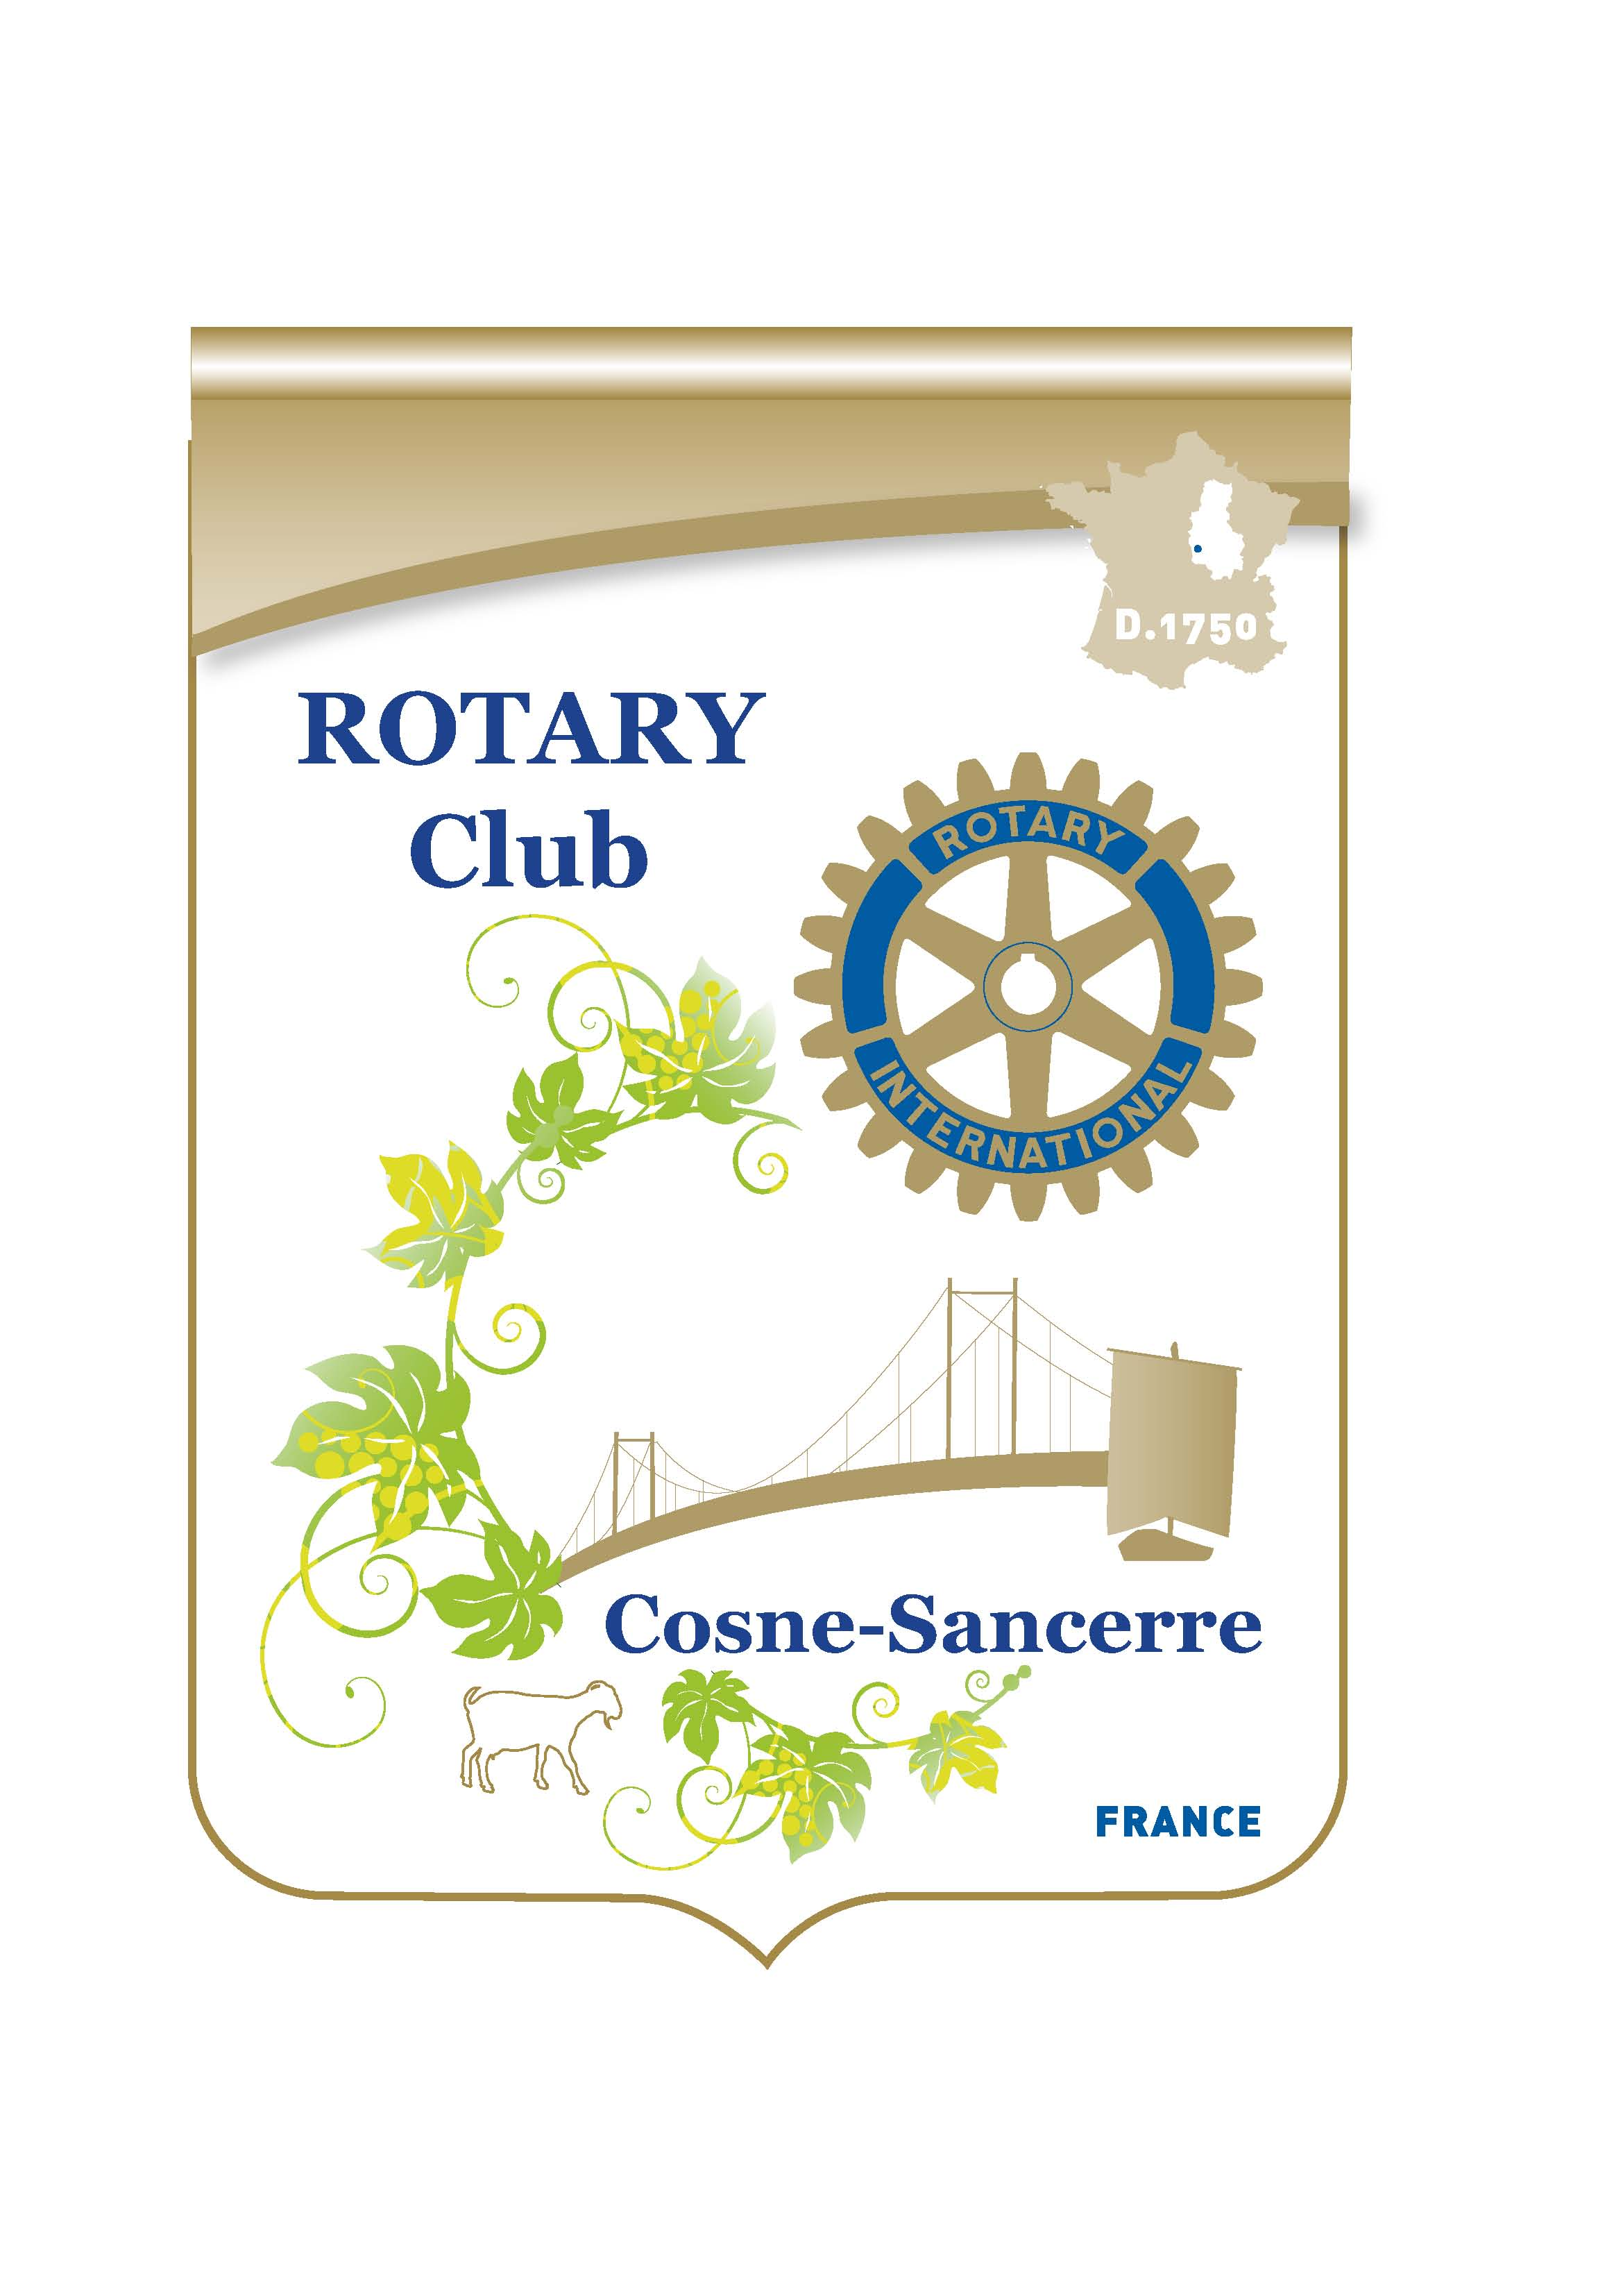 Rotary Club : Cosne-Sancerre